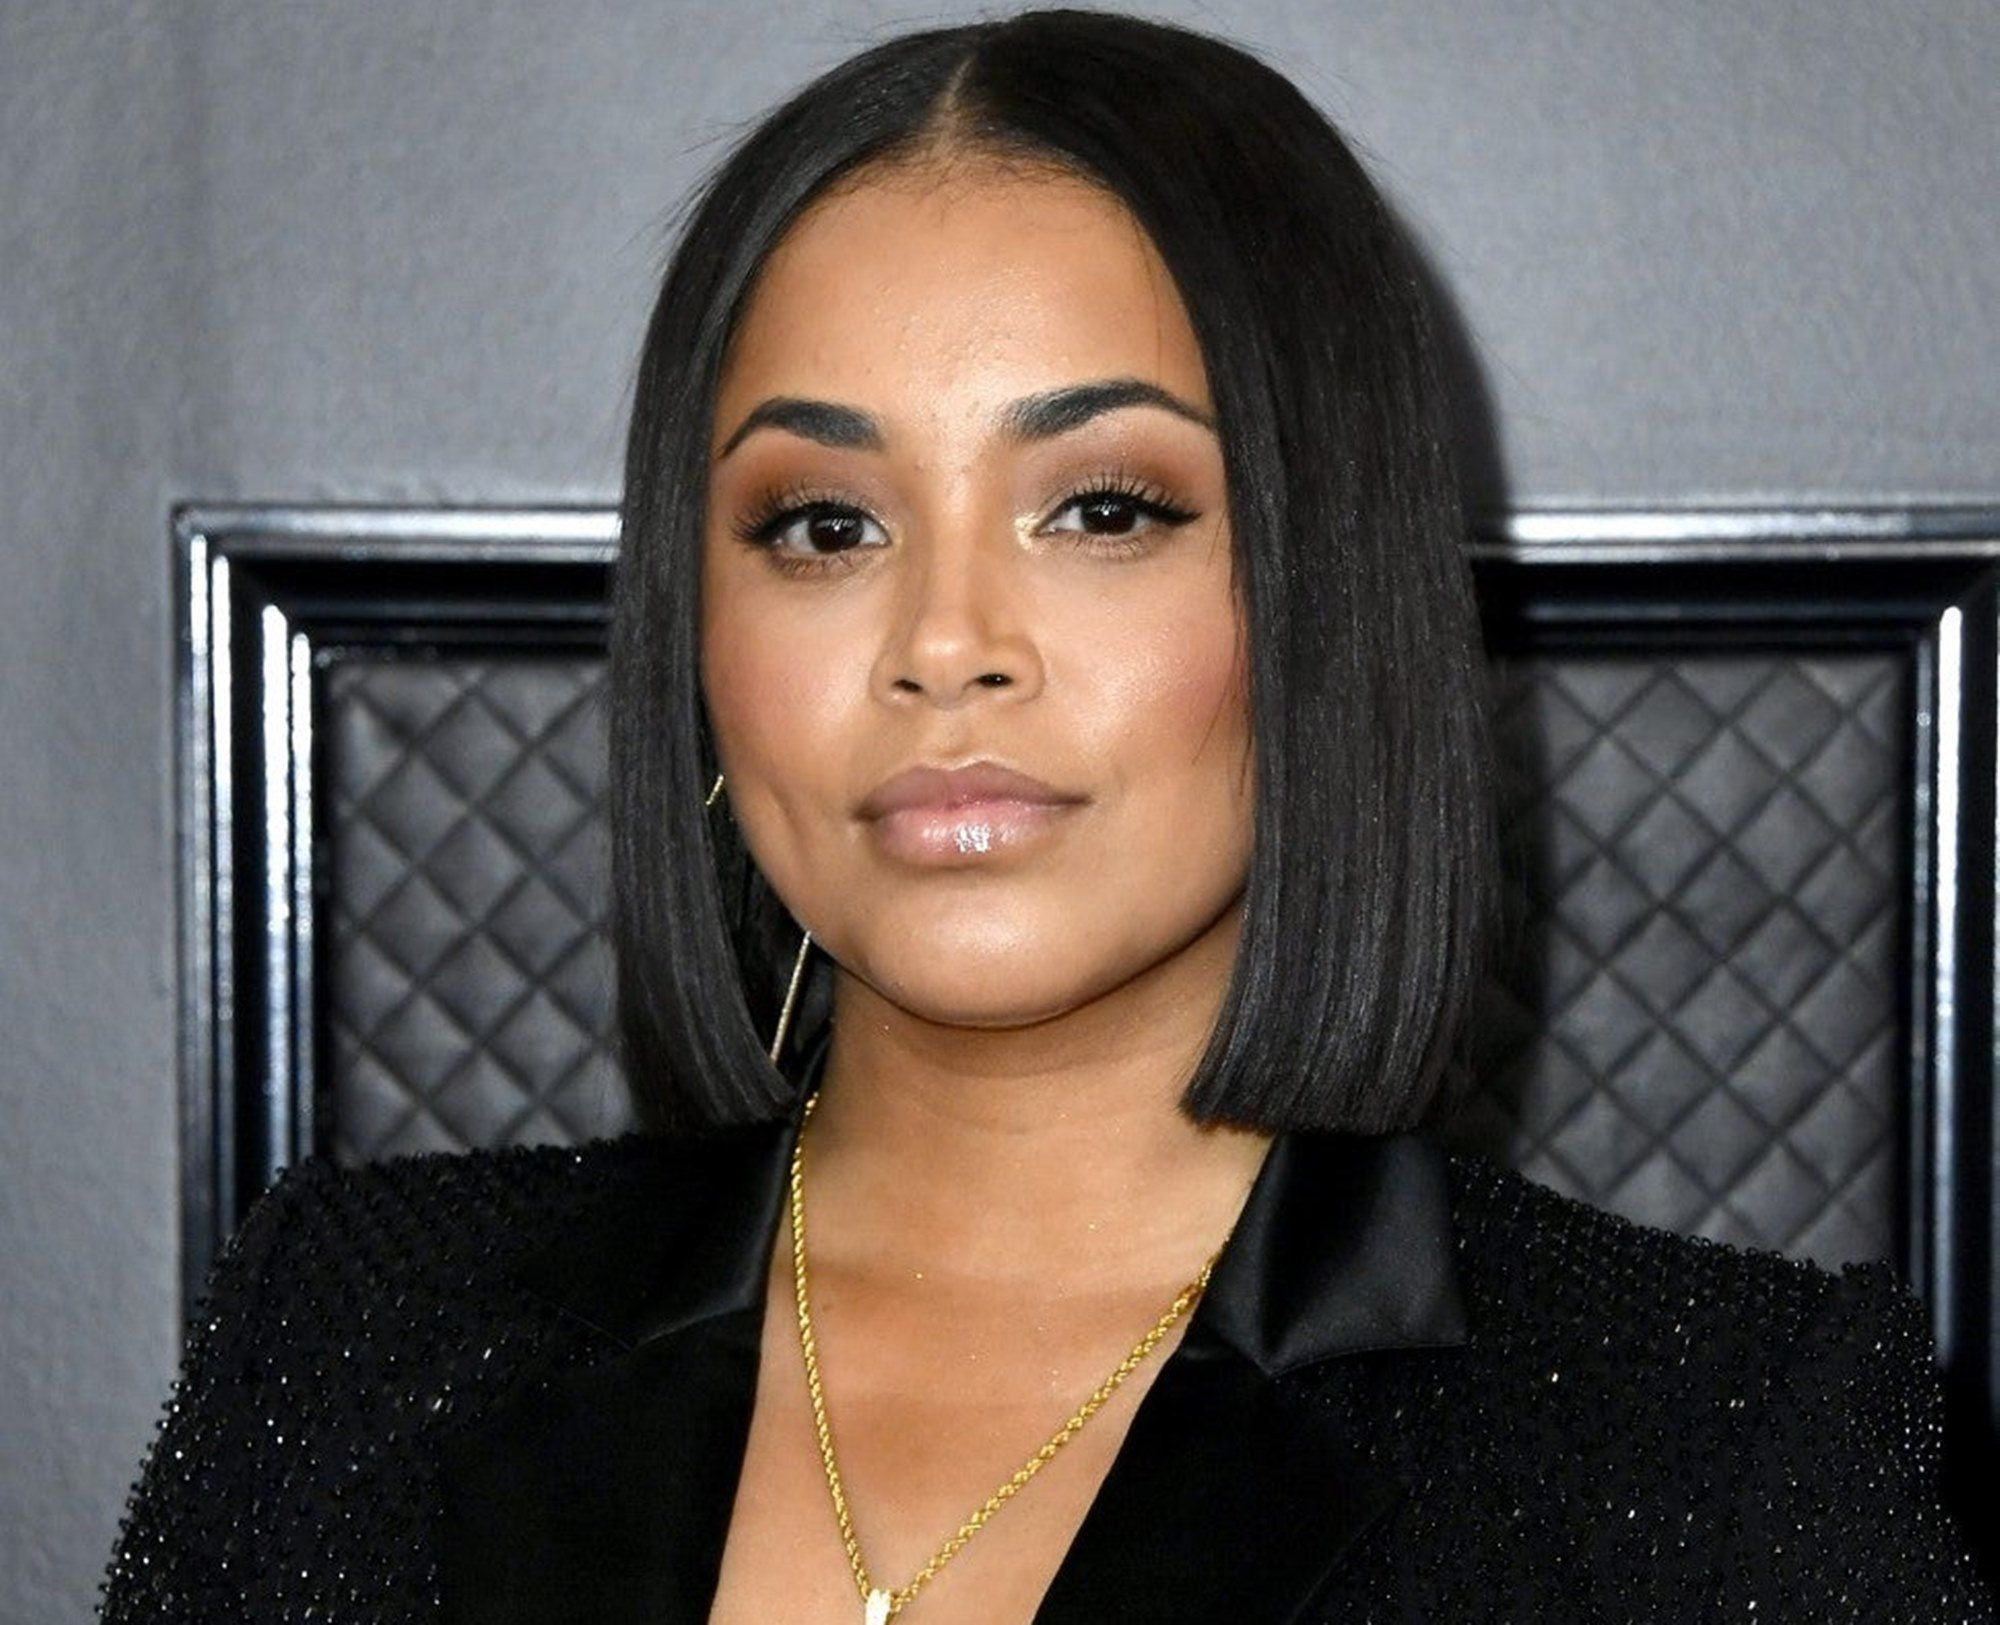 Lauren London And Samantha Smith Show Nipsey Hussle Massive Love With Emotional Messages And Rare Photos #LaurenLondon, #NipseyHussle, #SamanthaSmith celebrityinsider.org #Entertainment #celebrityinsider #celebritynews #celebrities #celebrity